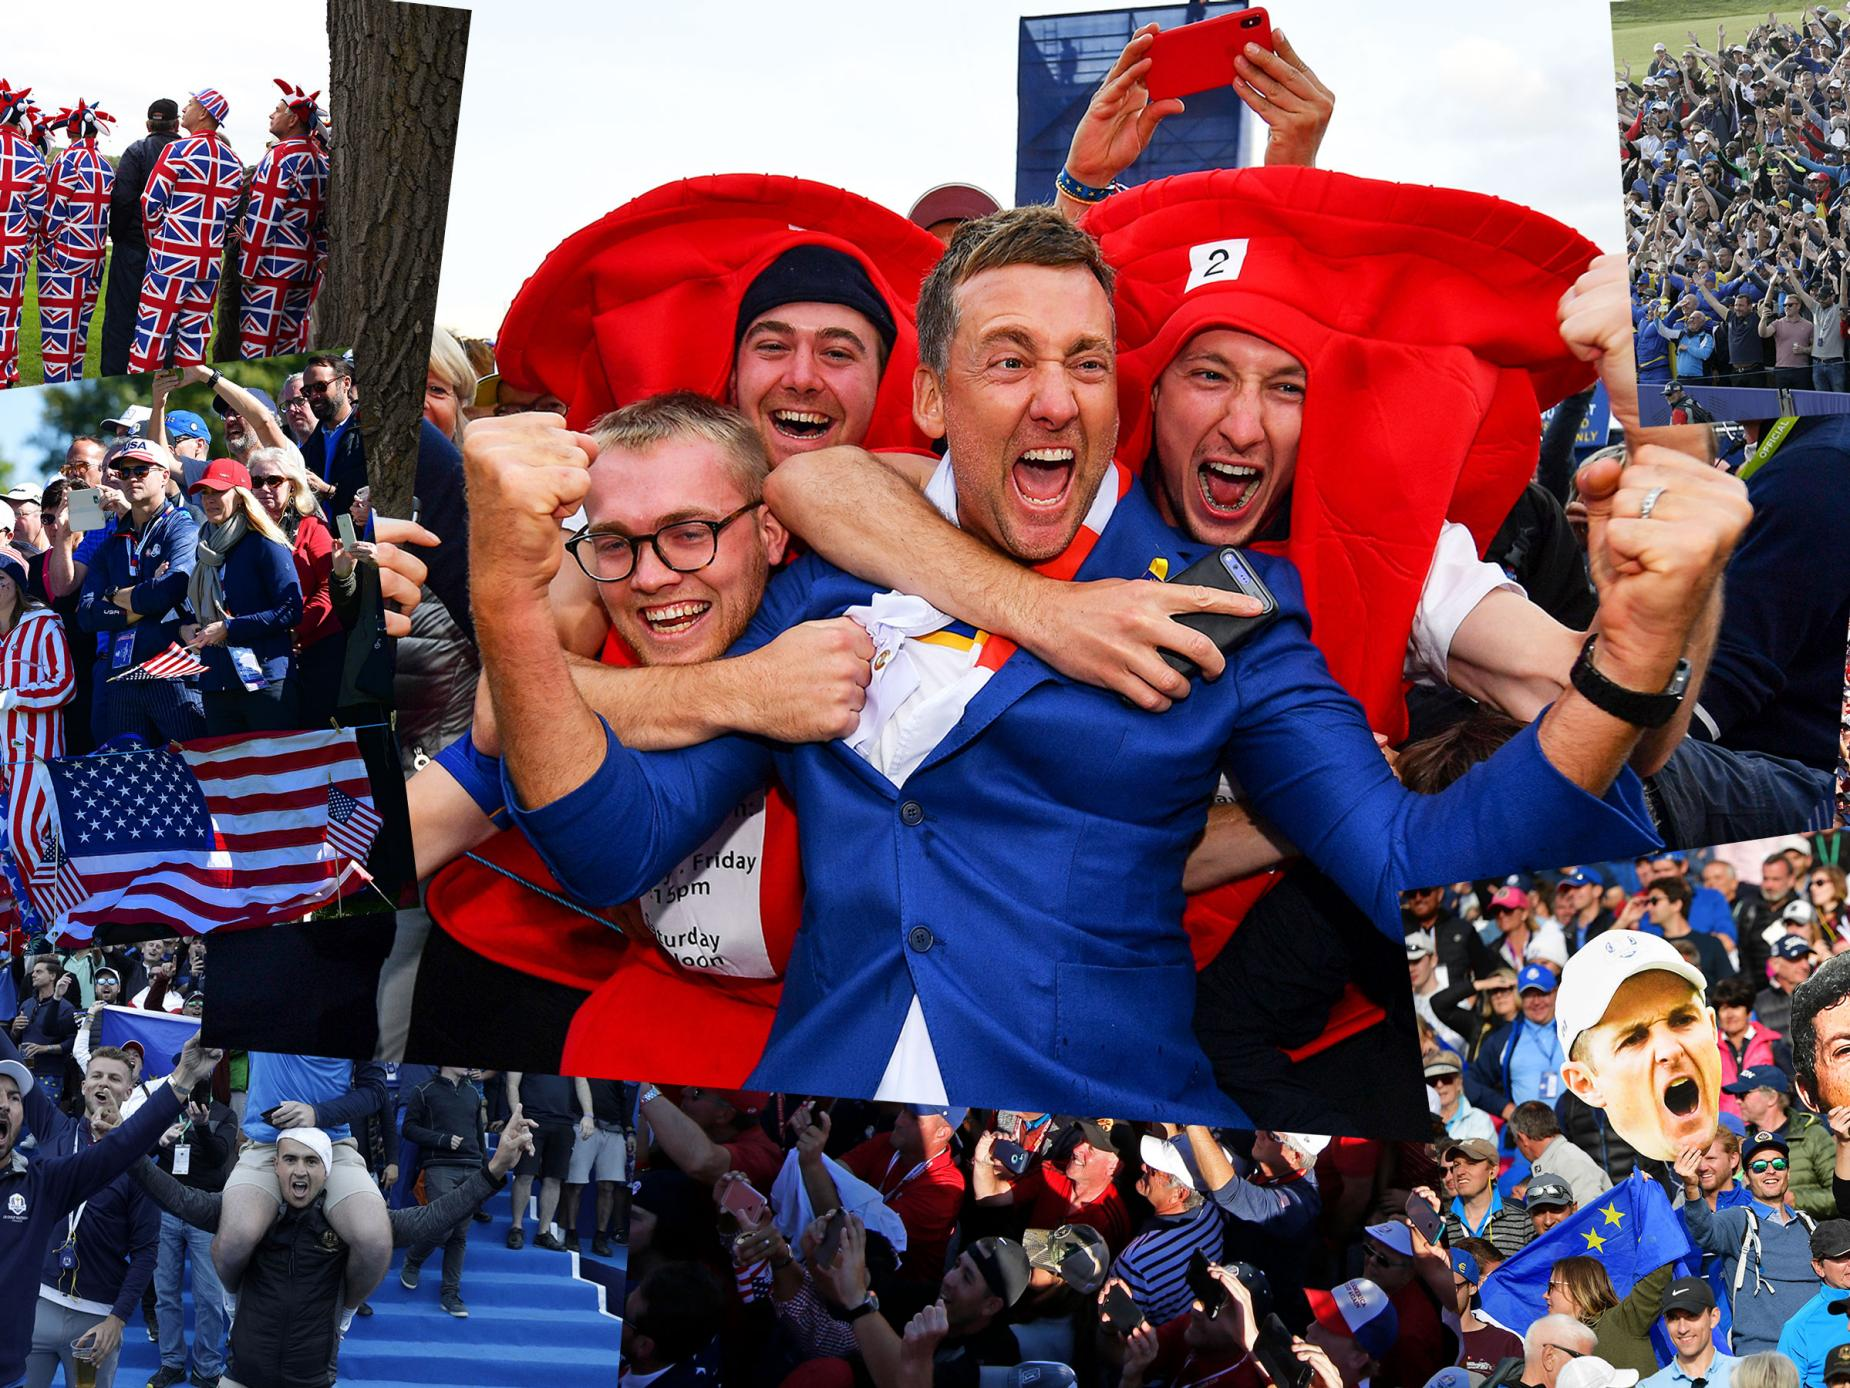 ryder-cup-fans-collage.jpg